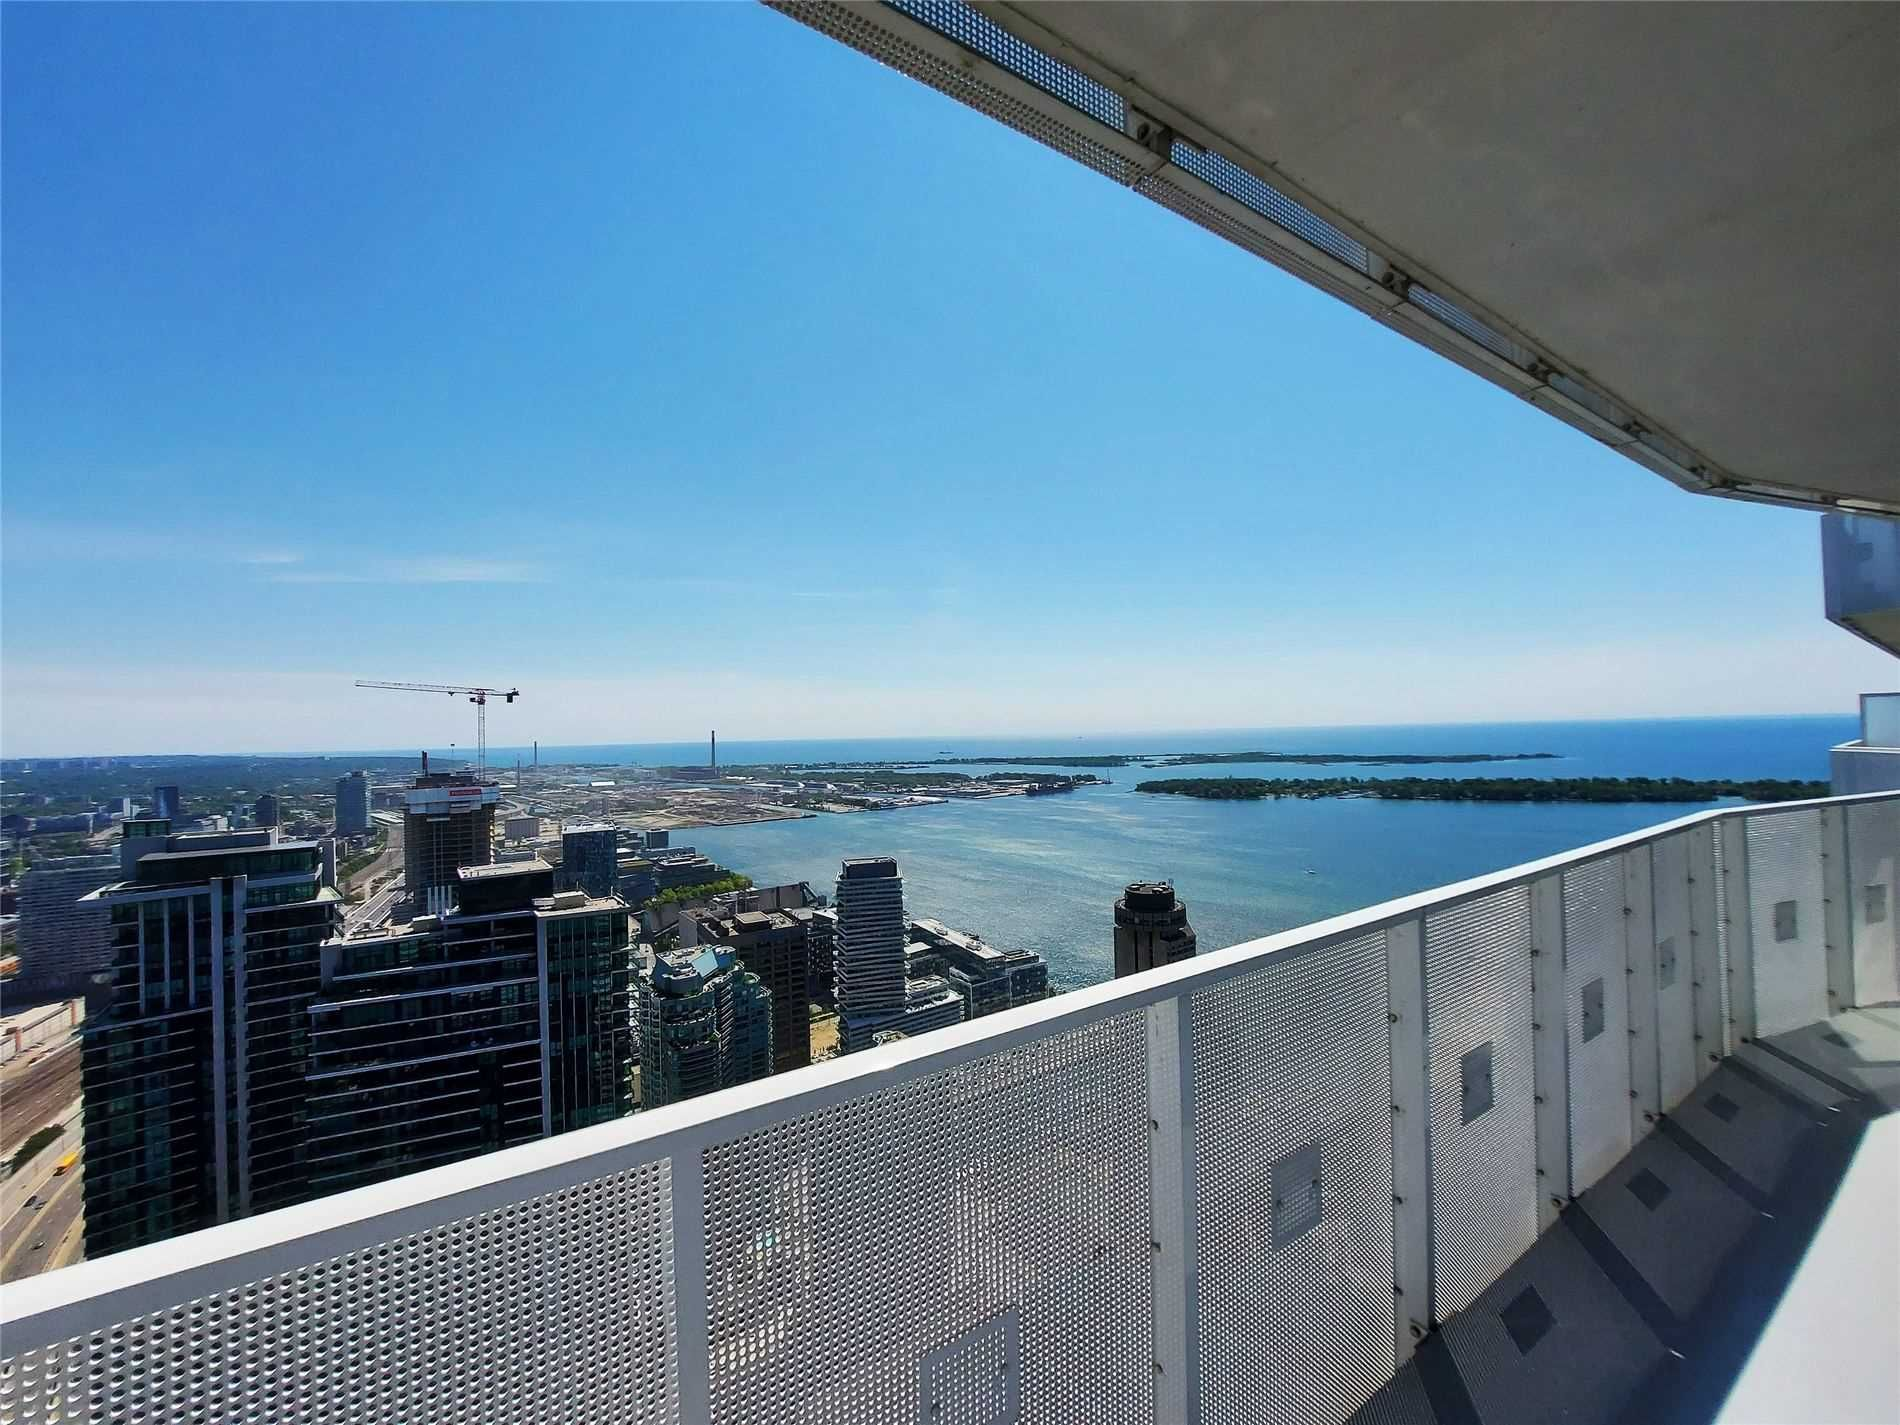 88 Harbour St, unit 6304 for rent in Toronto - image #1